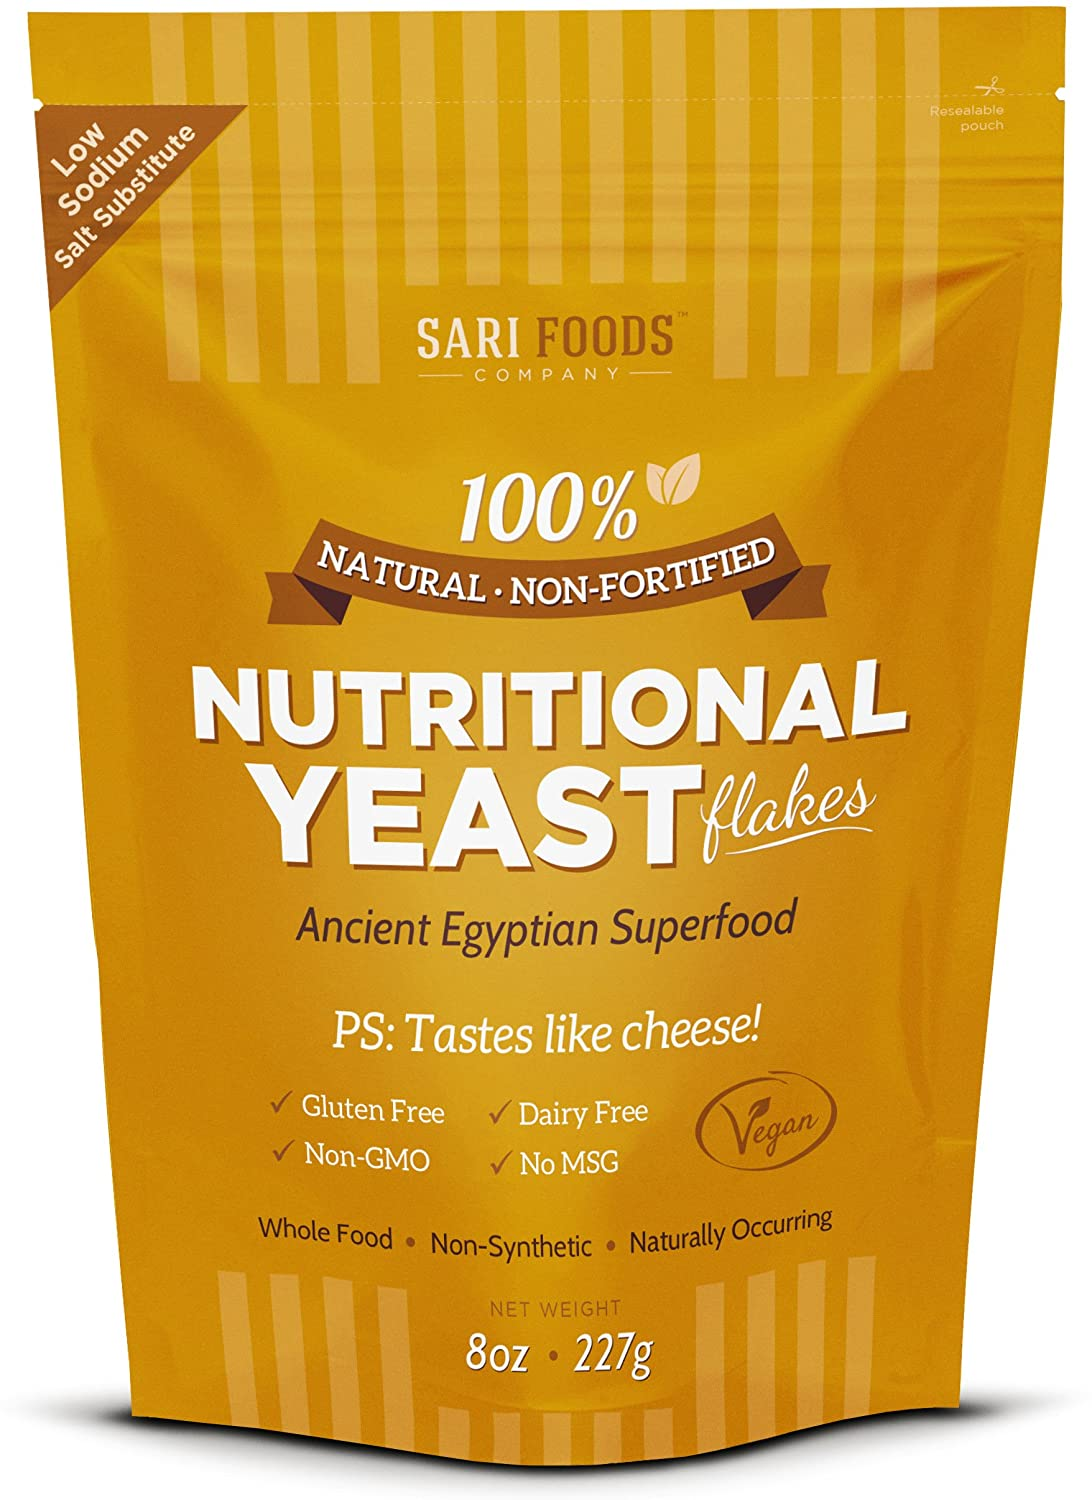 Southern Chick Reviews And More Nutritional Yeast